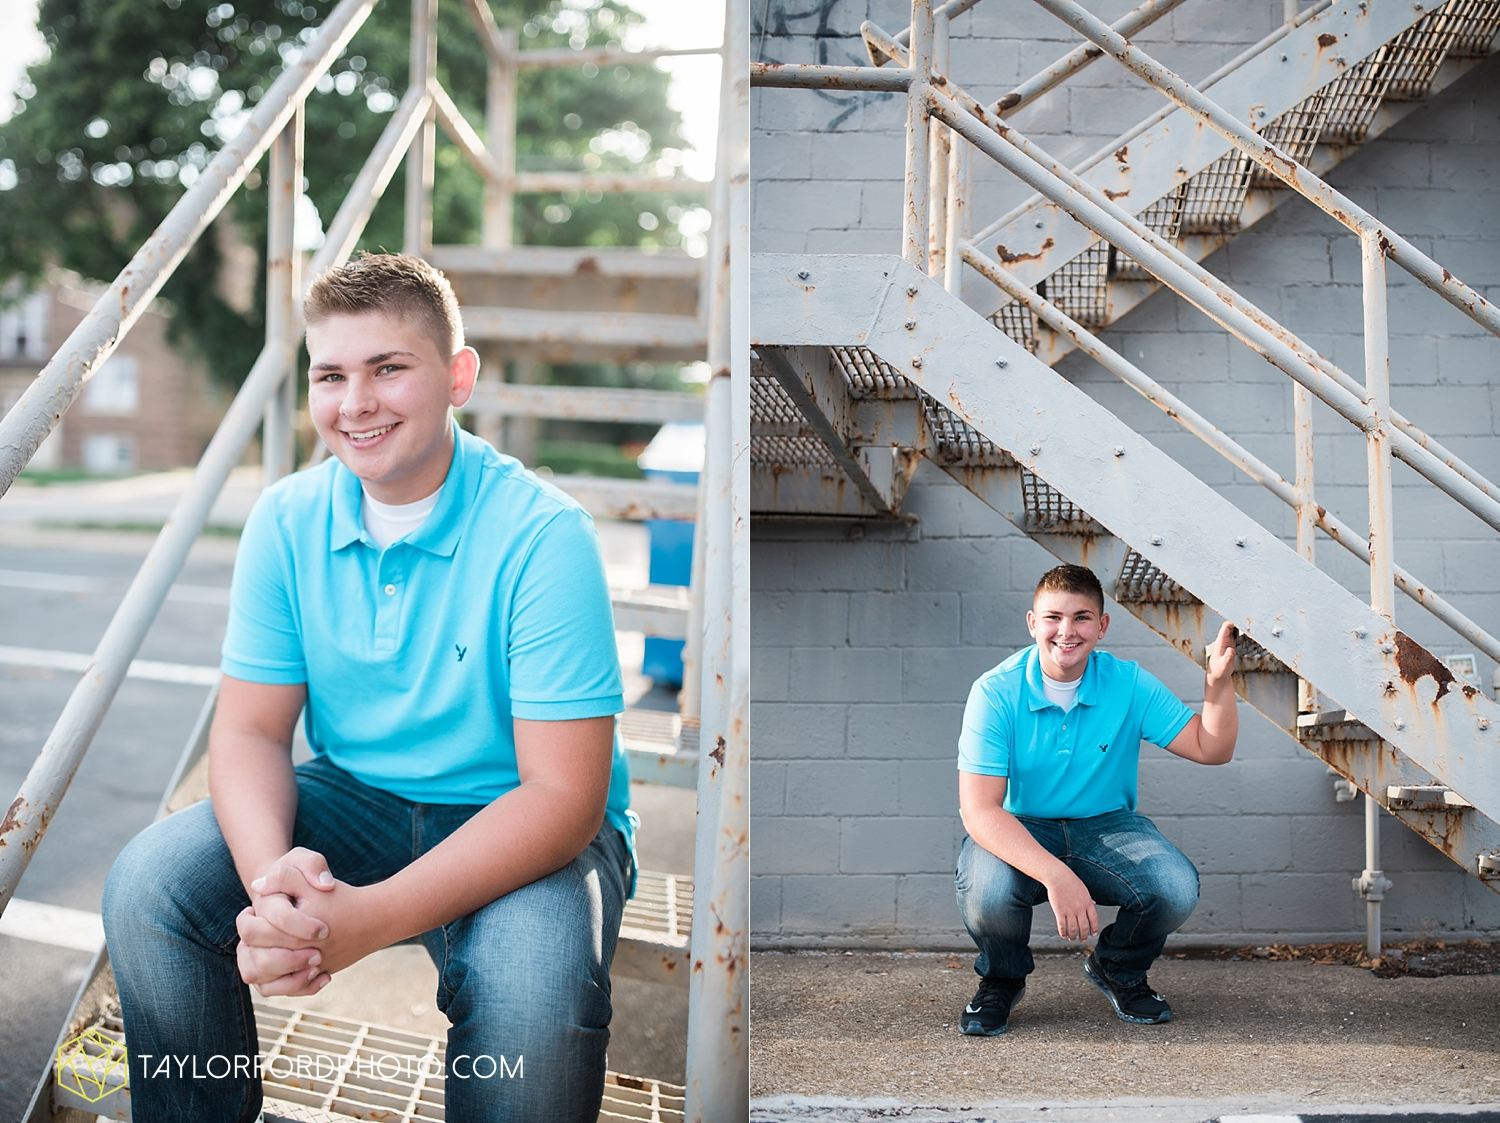 van_wert_ohio_fort_wayne_indiana__photographer_taylor_ford_nashville_tennessee_senior_high_school_2603.jpg